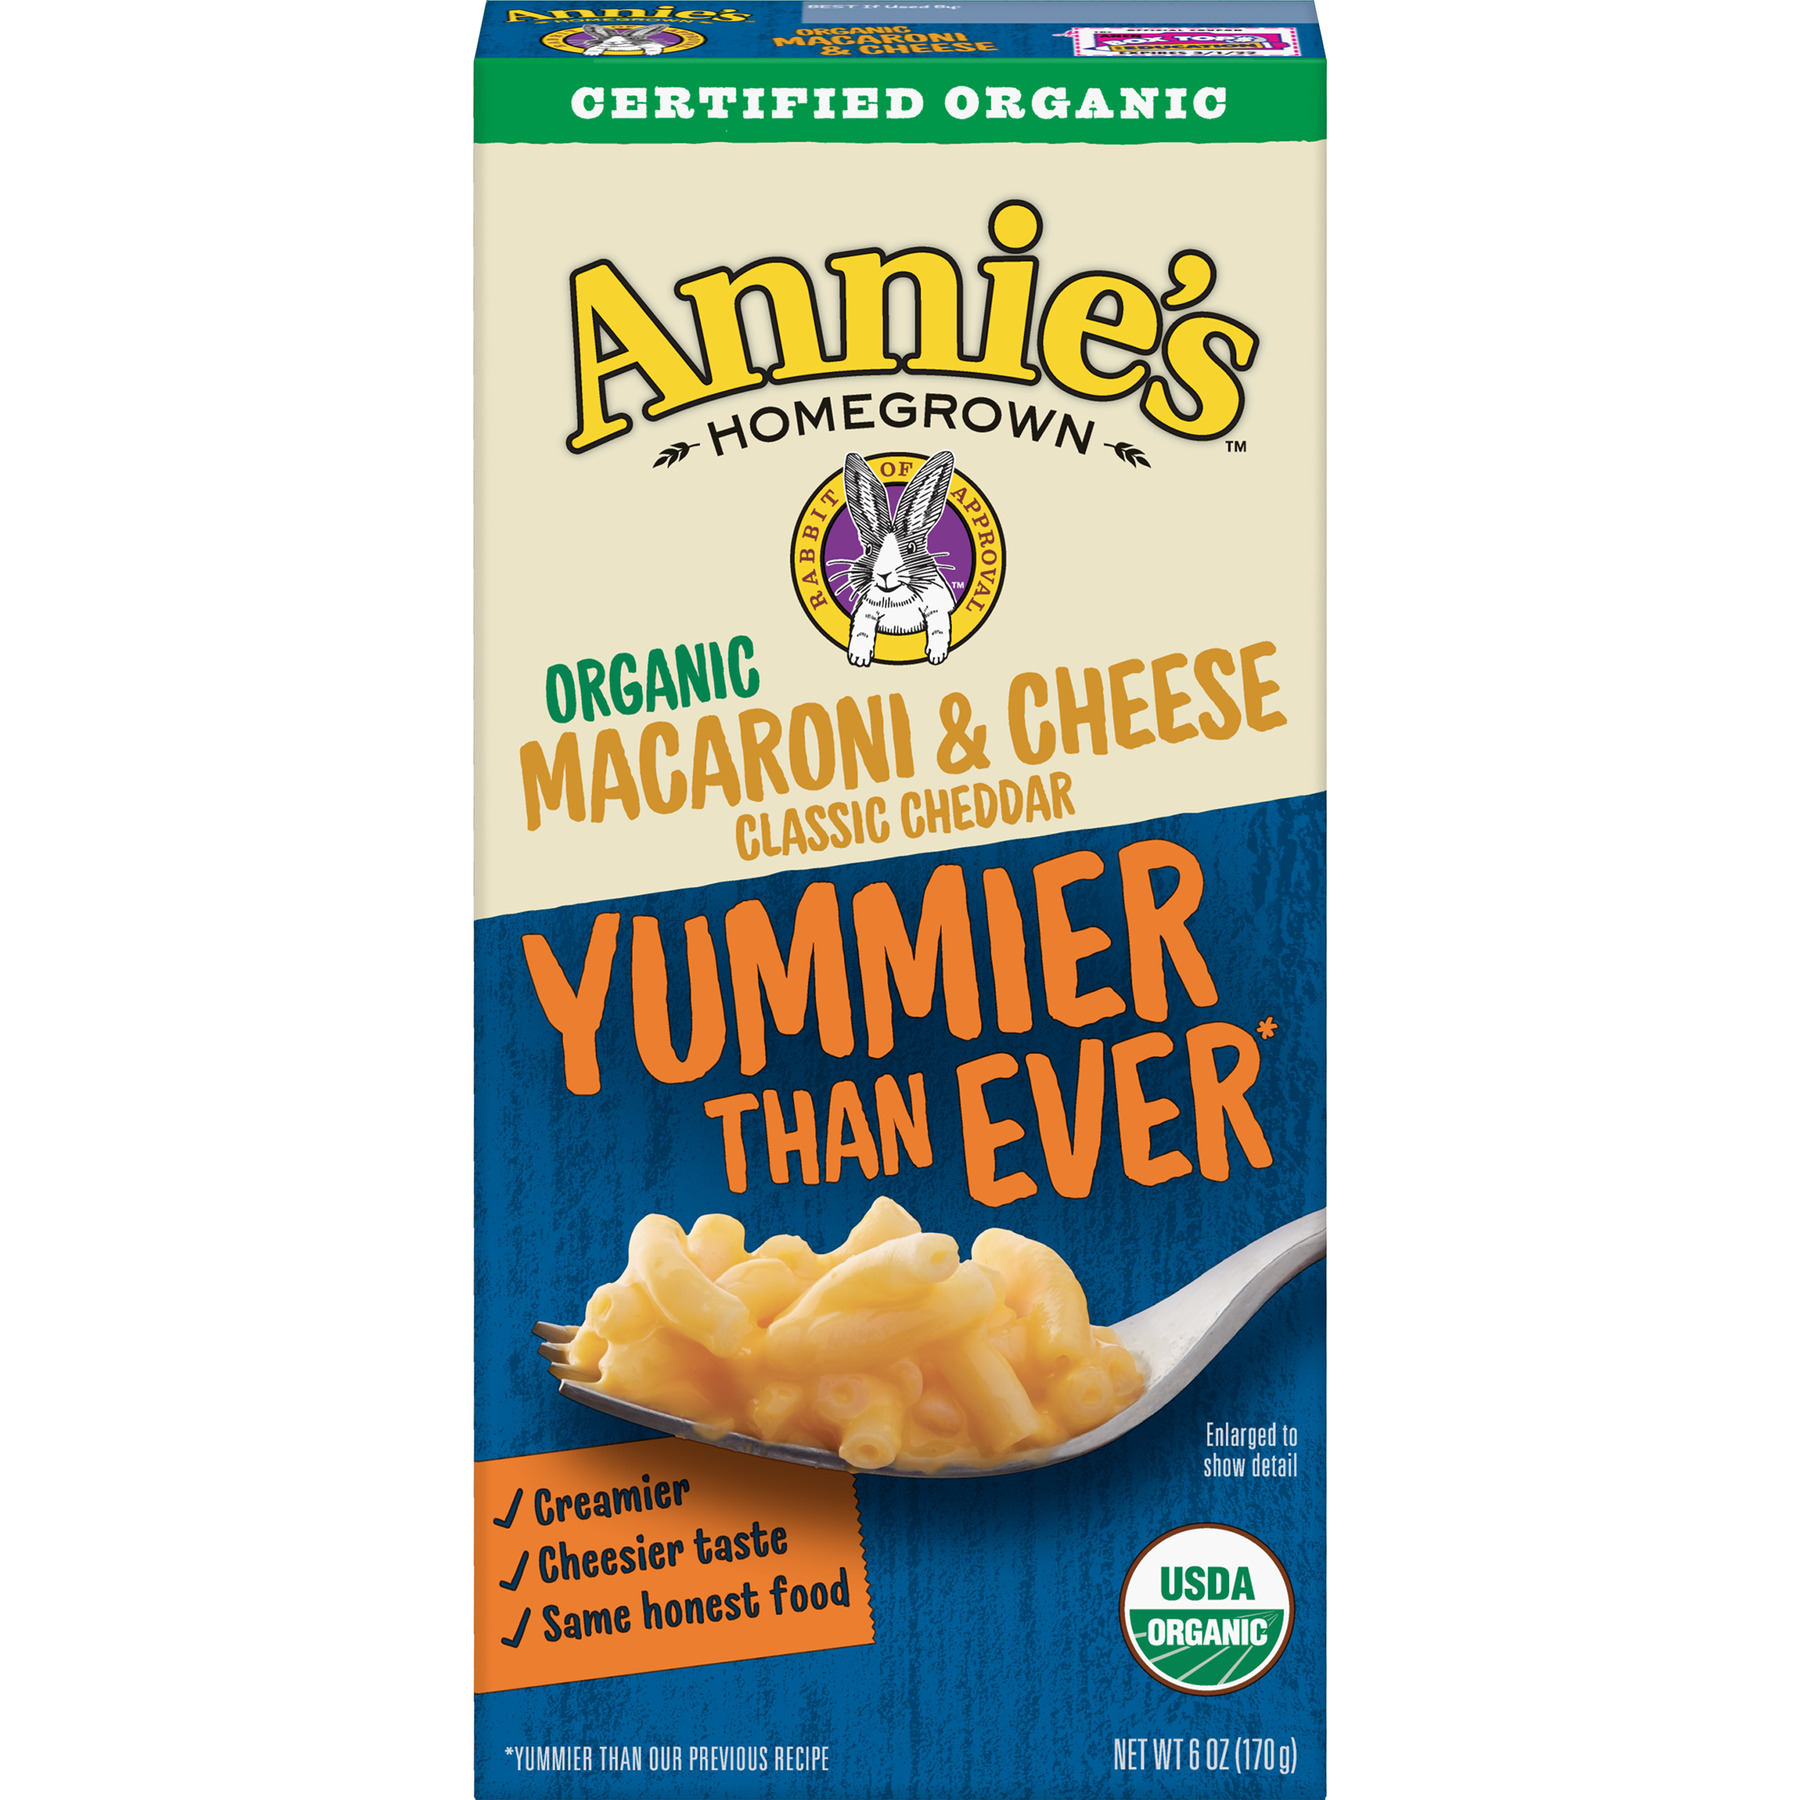 Annie's Organic Macaroni and Cheese, Pasta & Classic Mild Cheddar Mac and Cheese, 6 oz Box